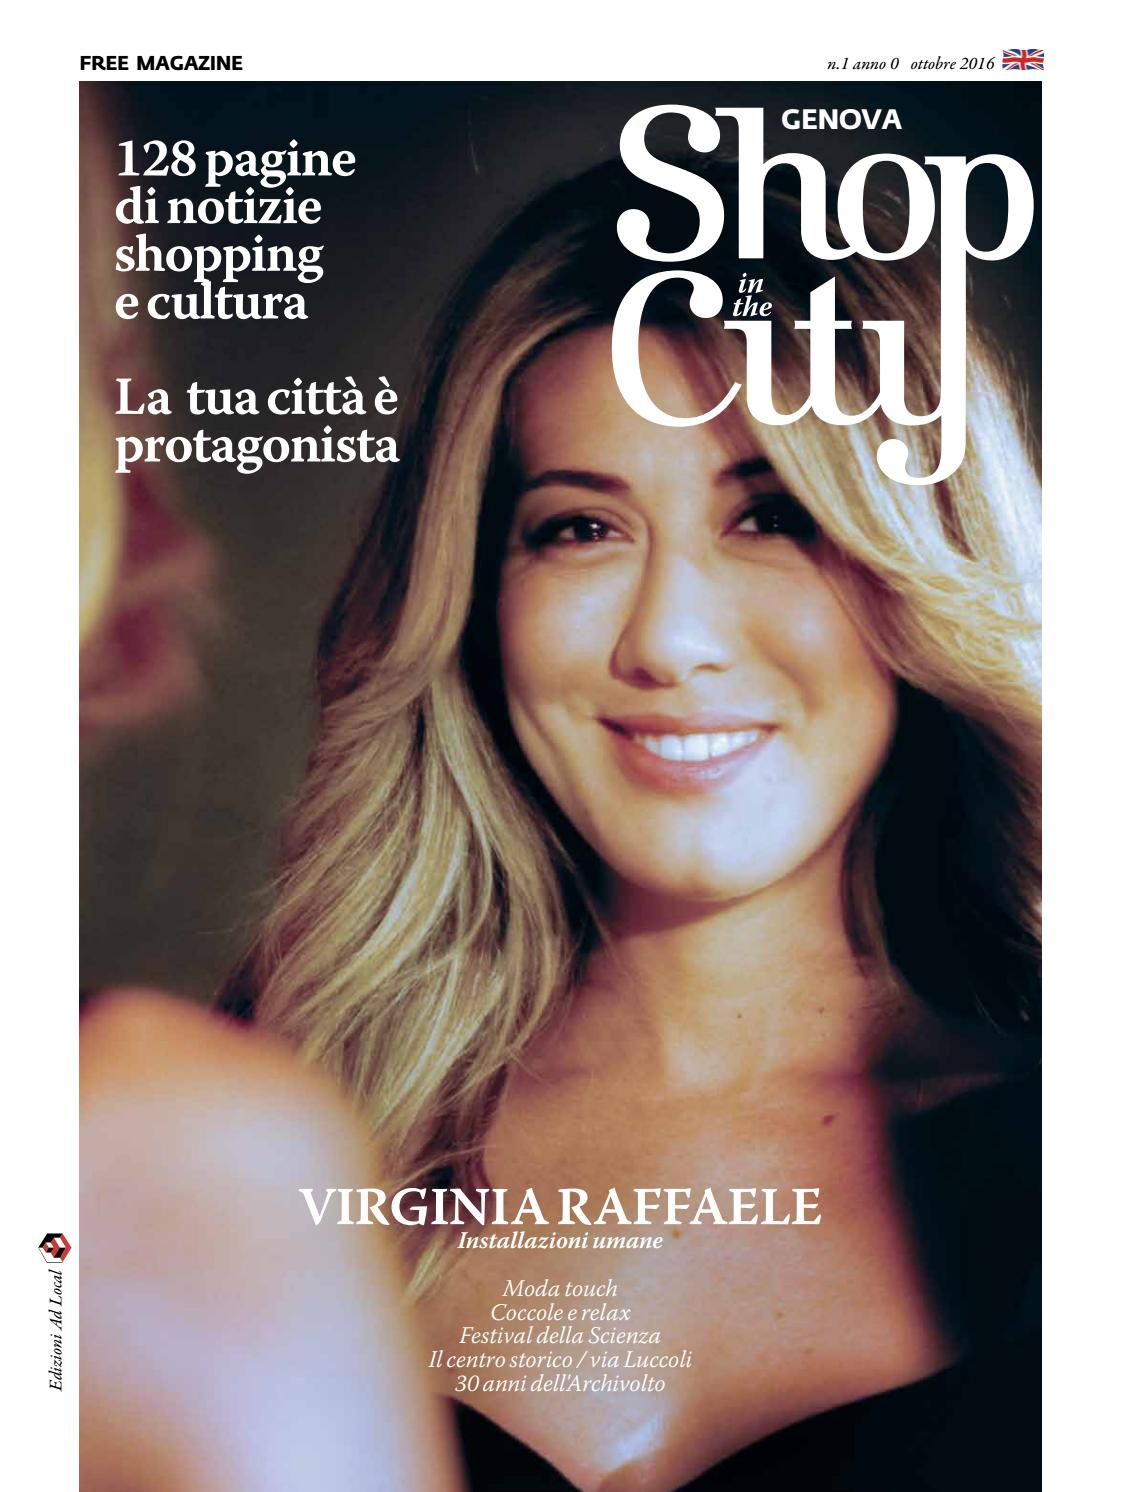 Genova shop in the city ottobre 2016 by ShopintheCity issuu